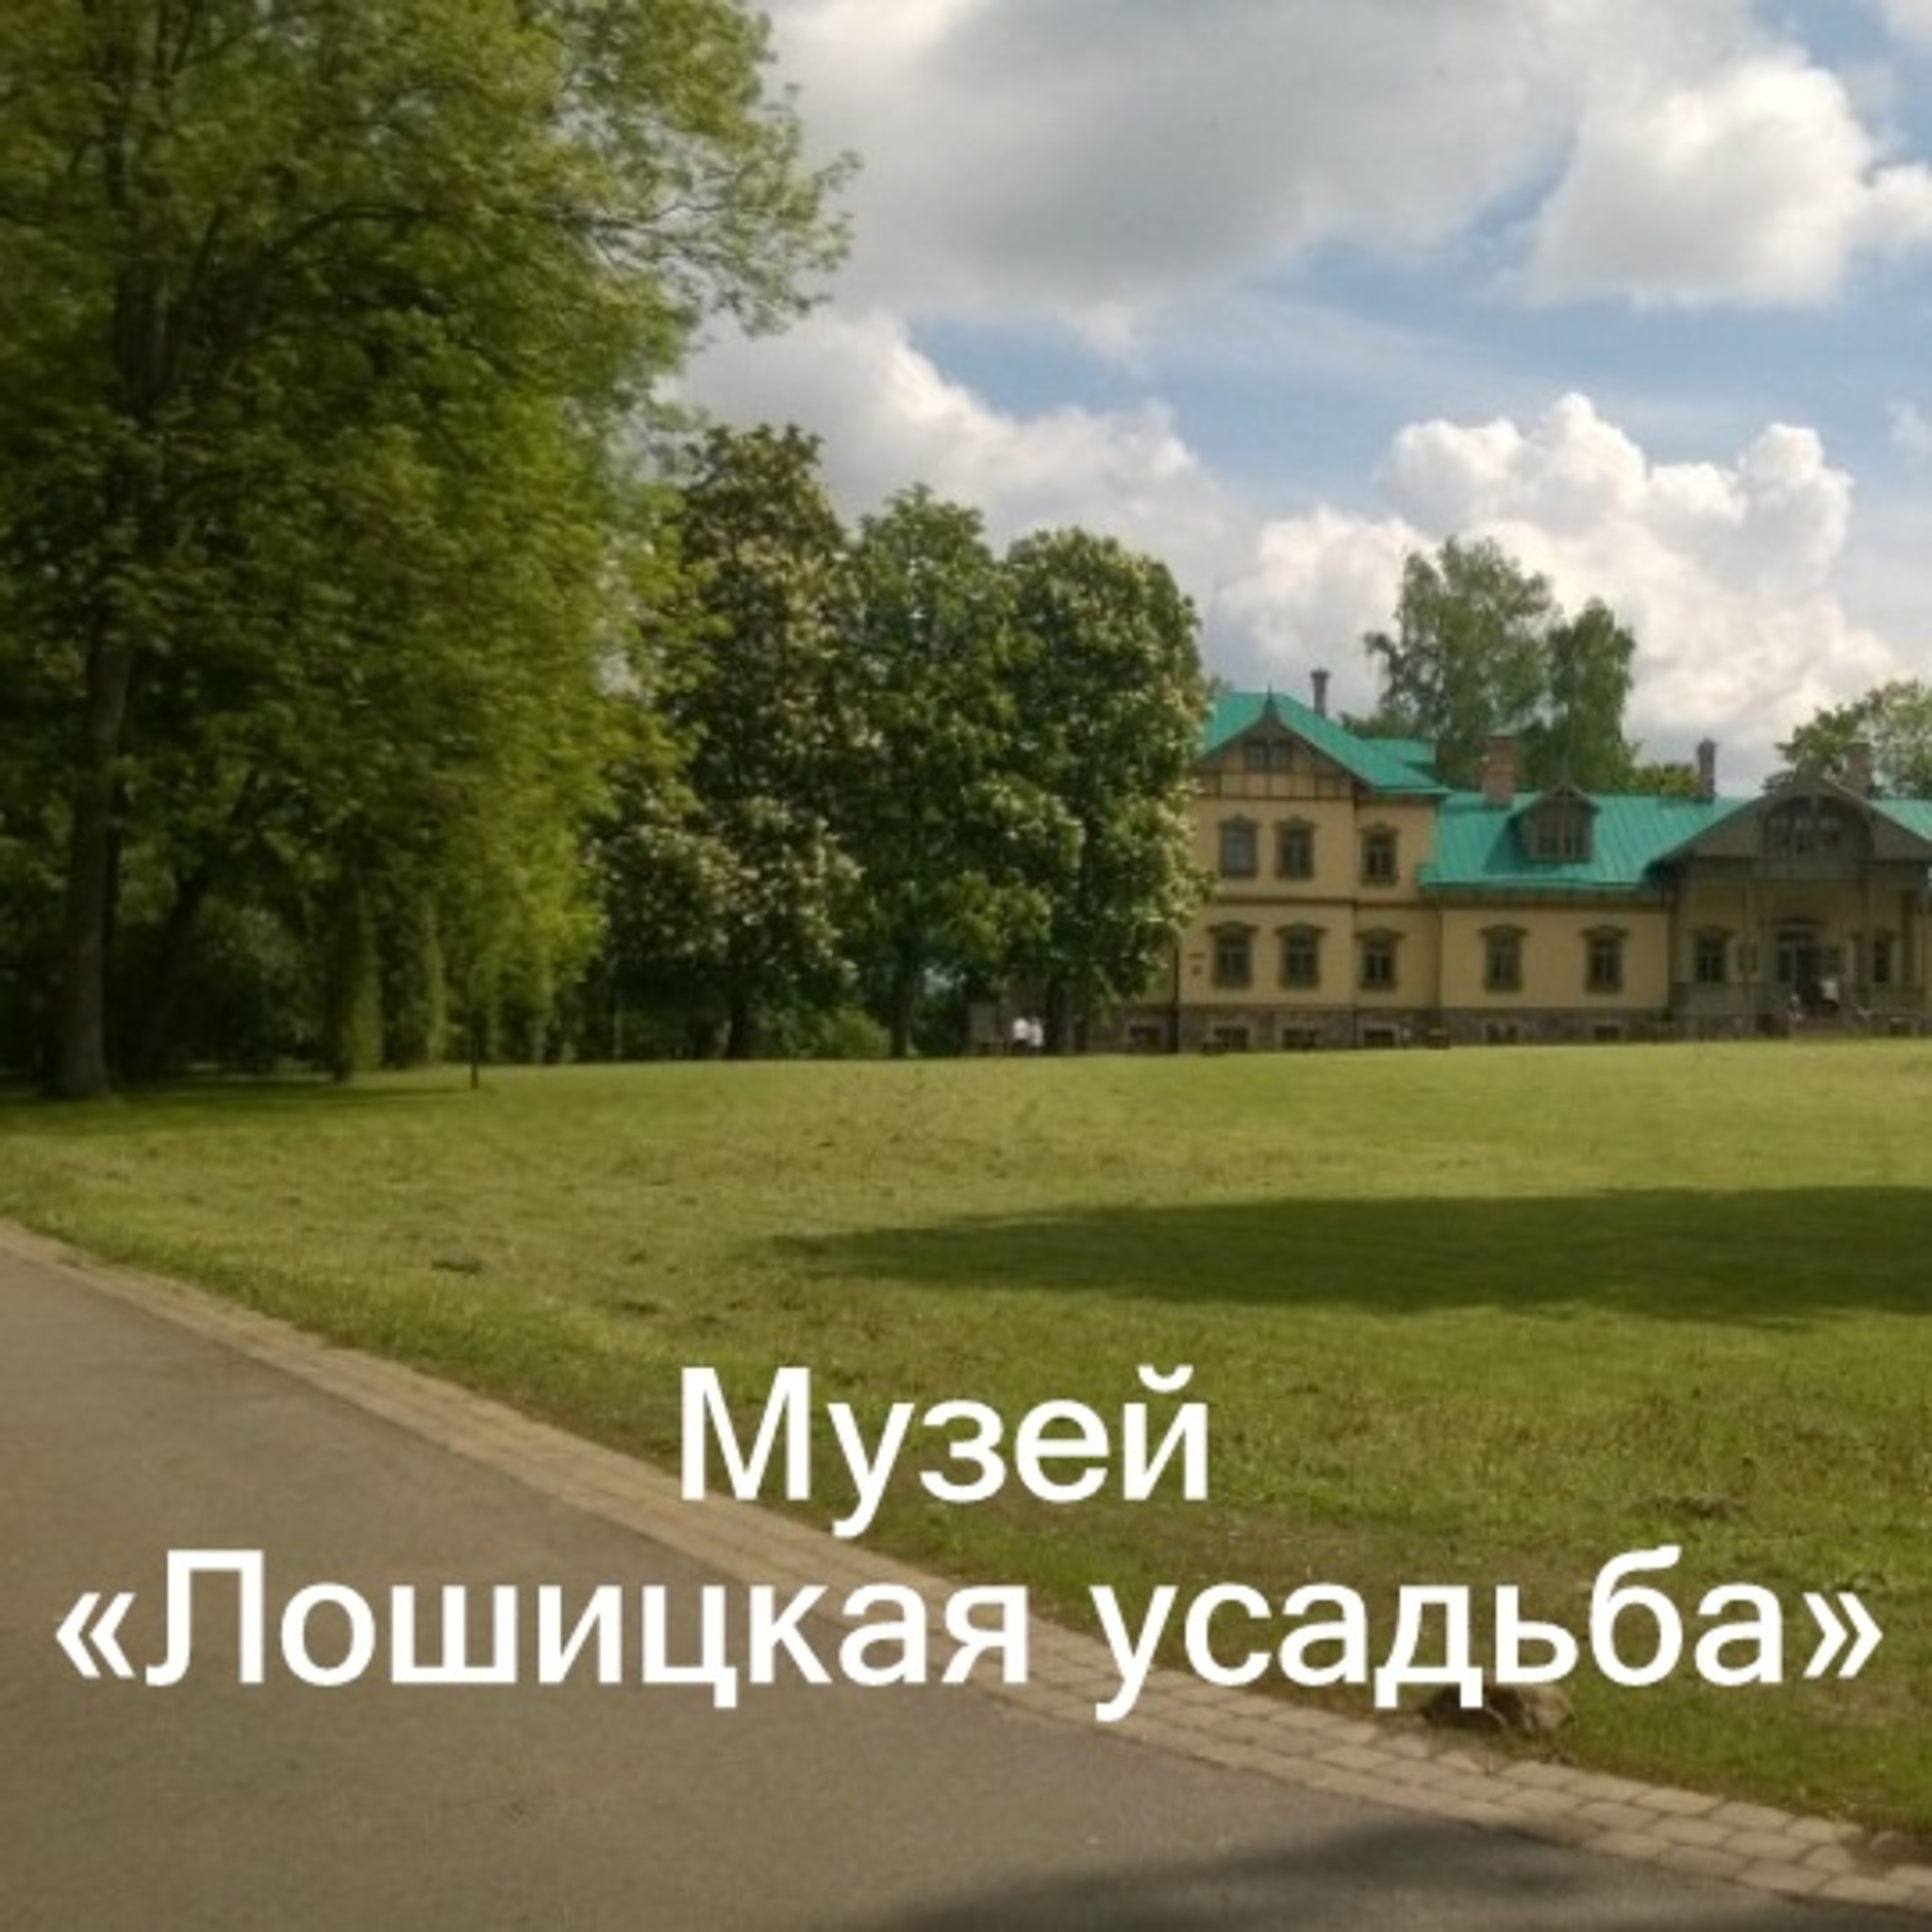 The museum Loshitsa estate